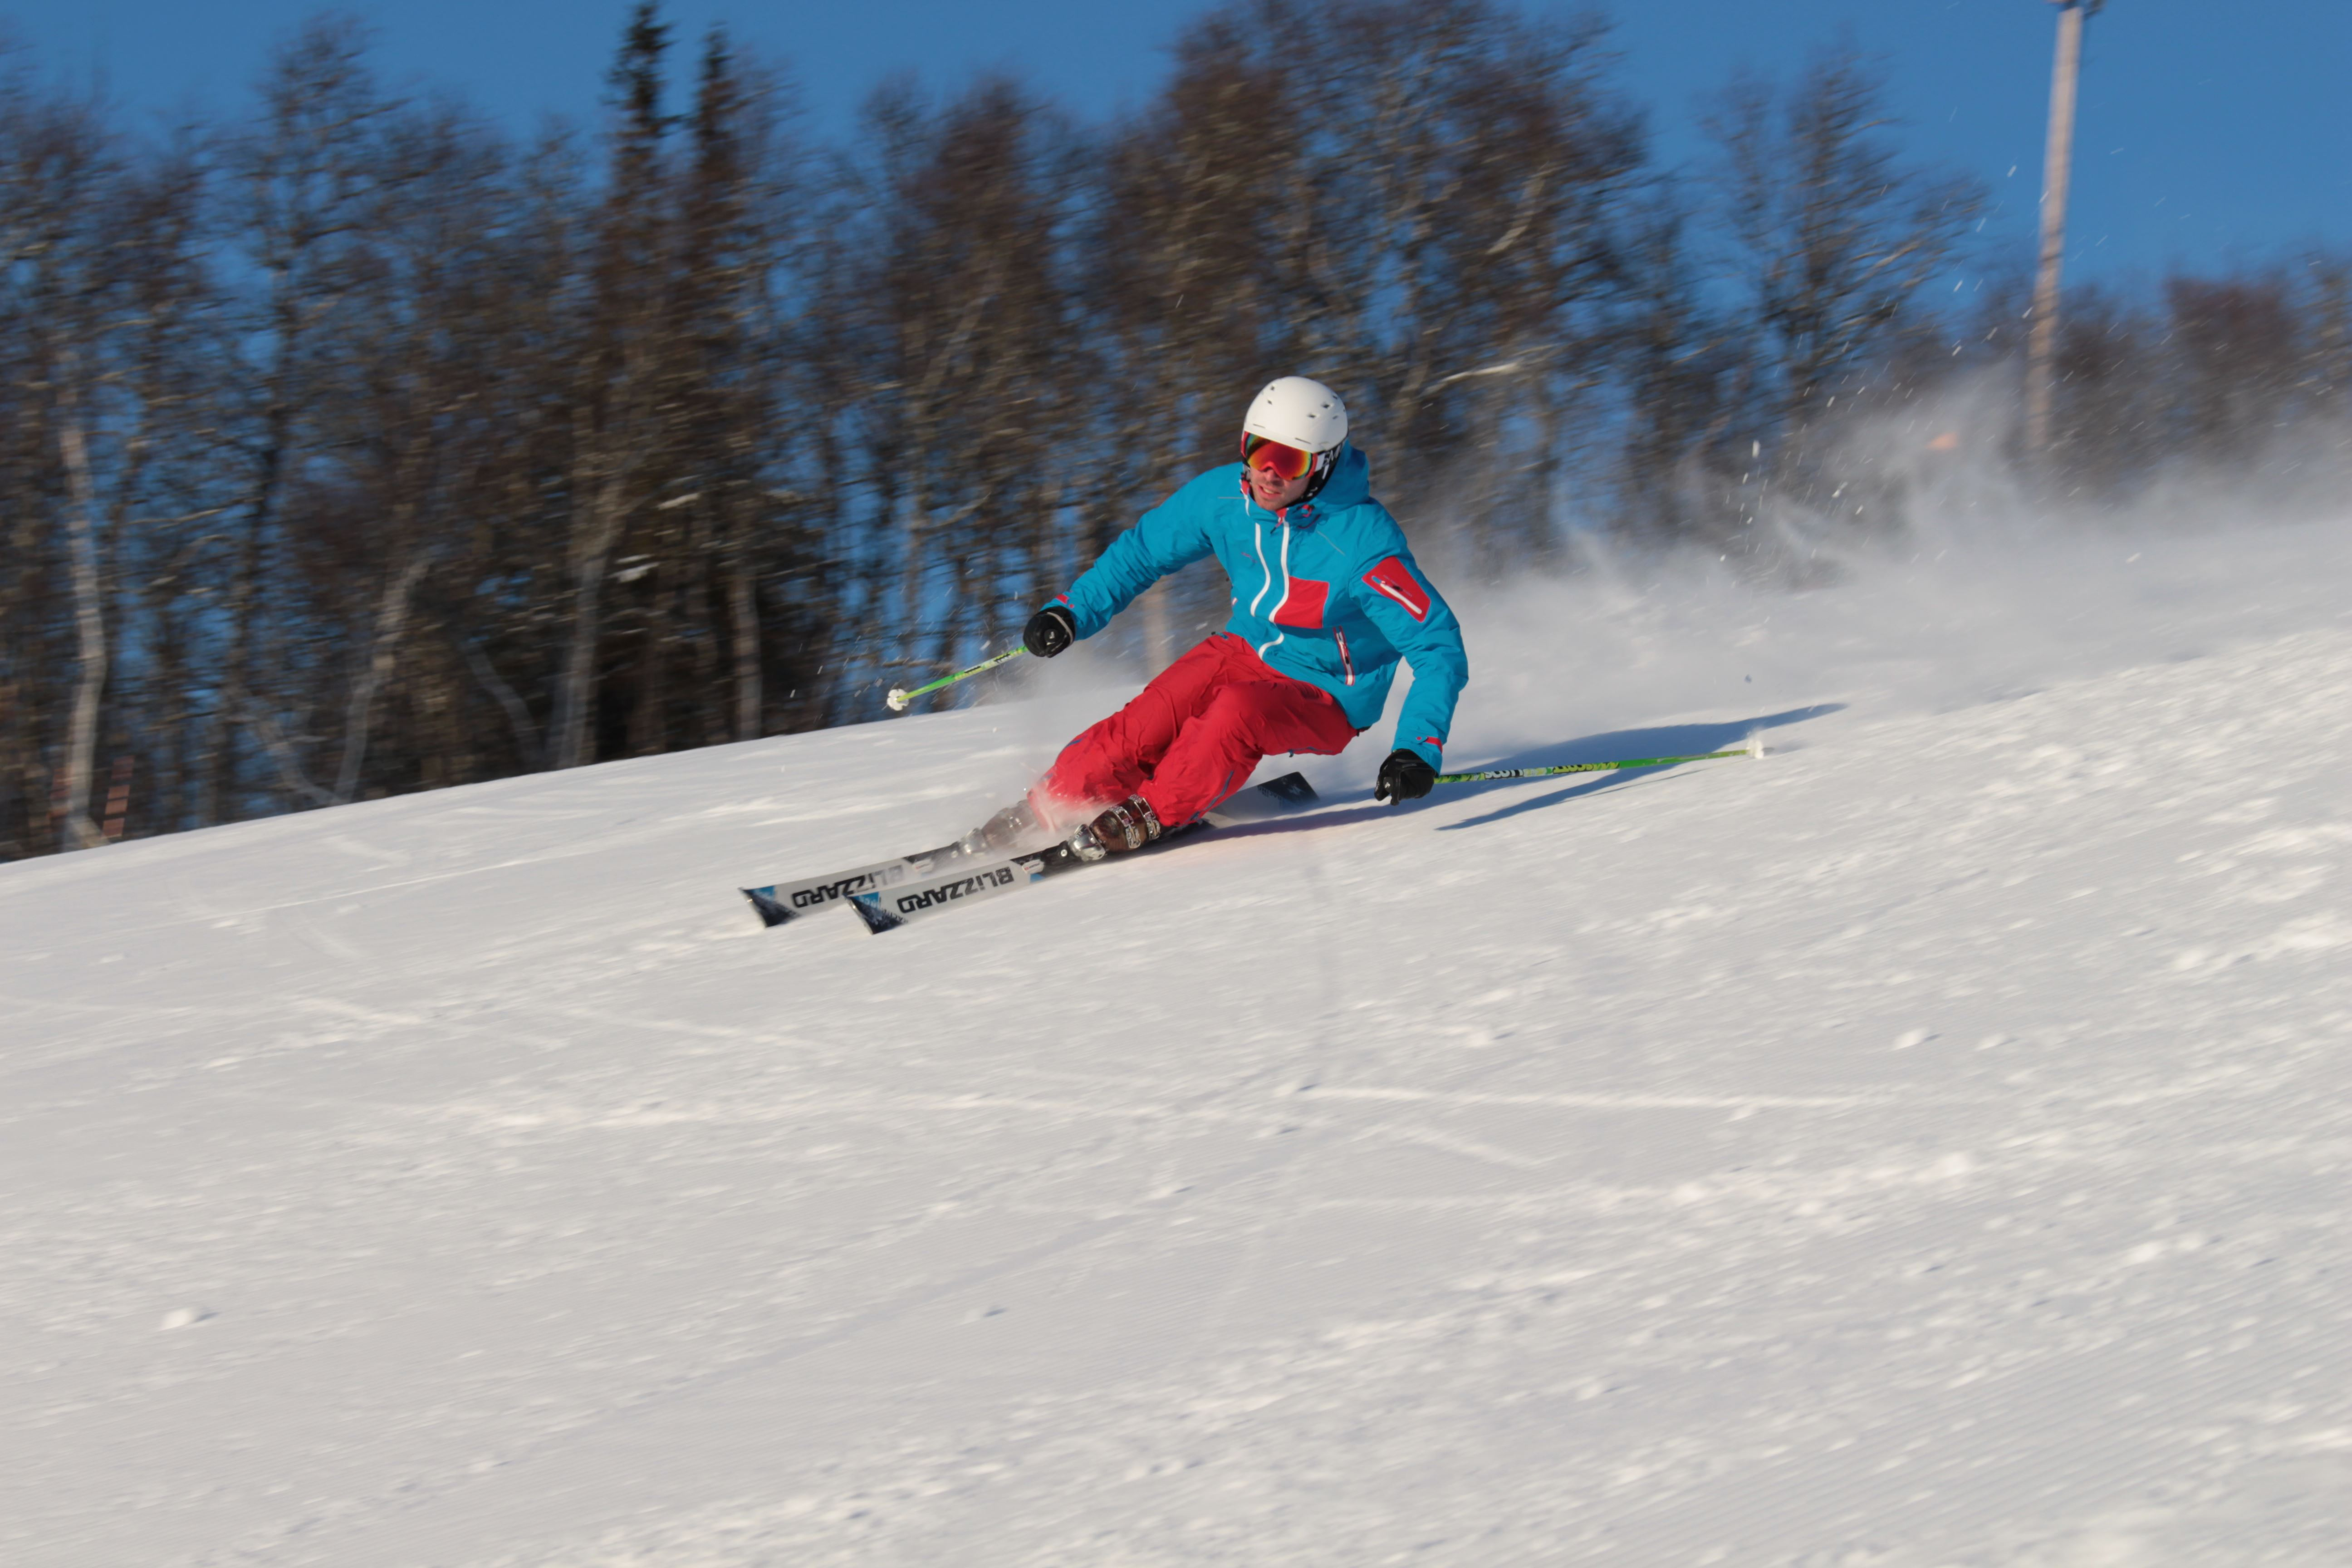 Book a private lesson on skis, telemark or snowboard